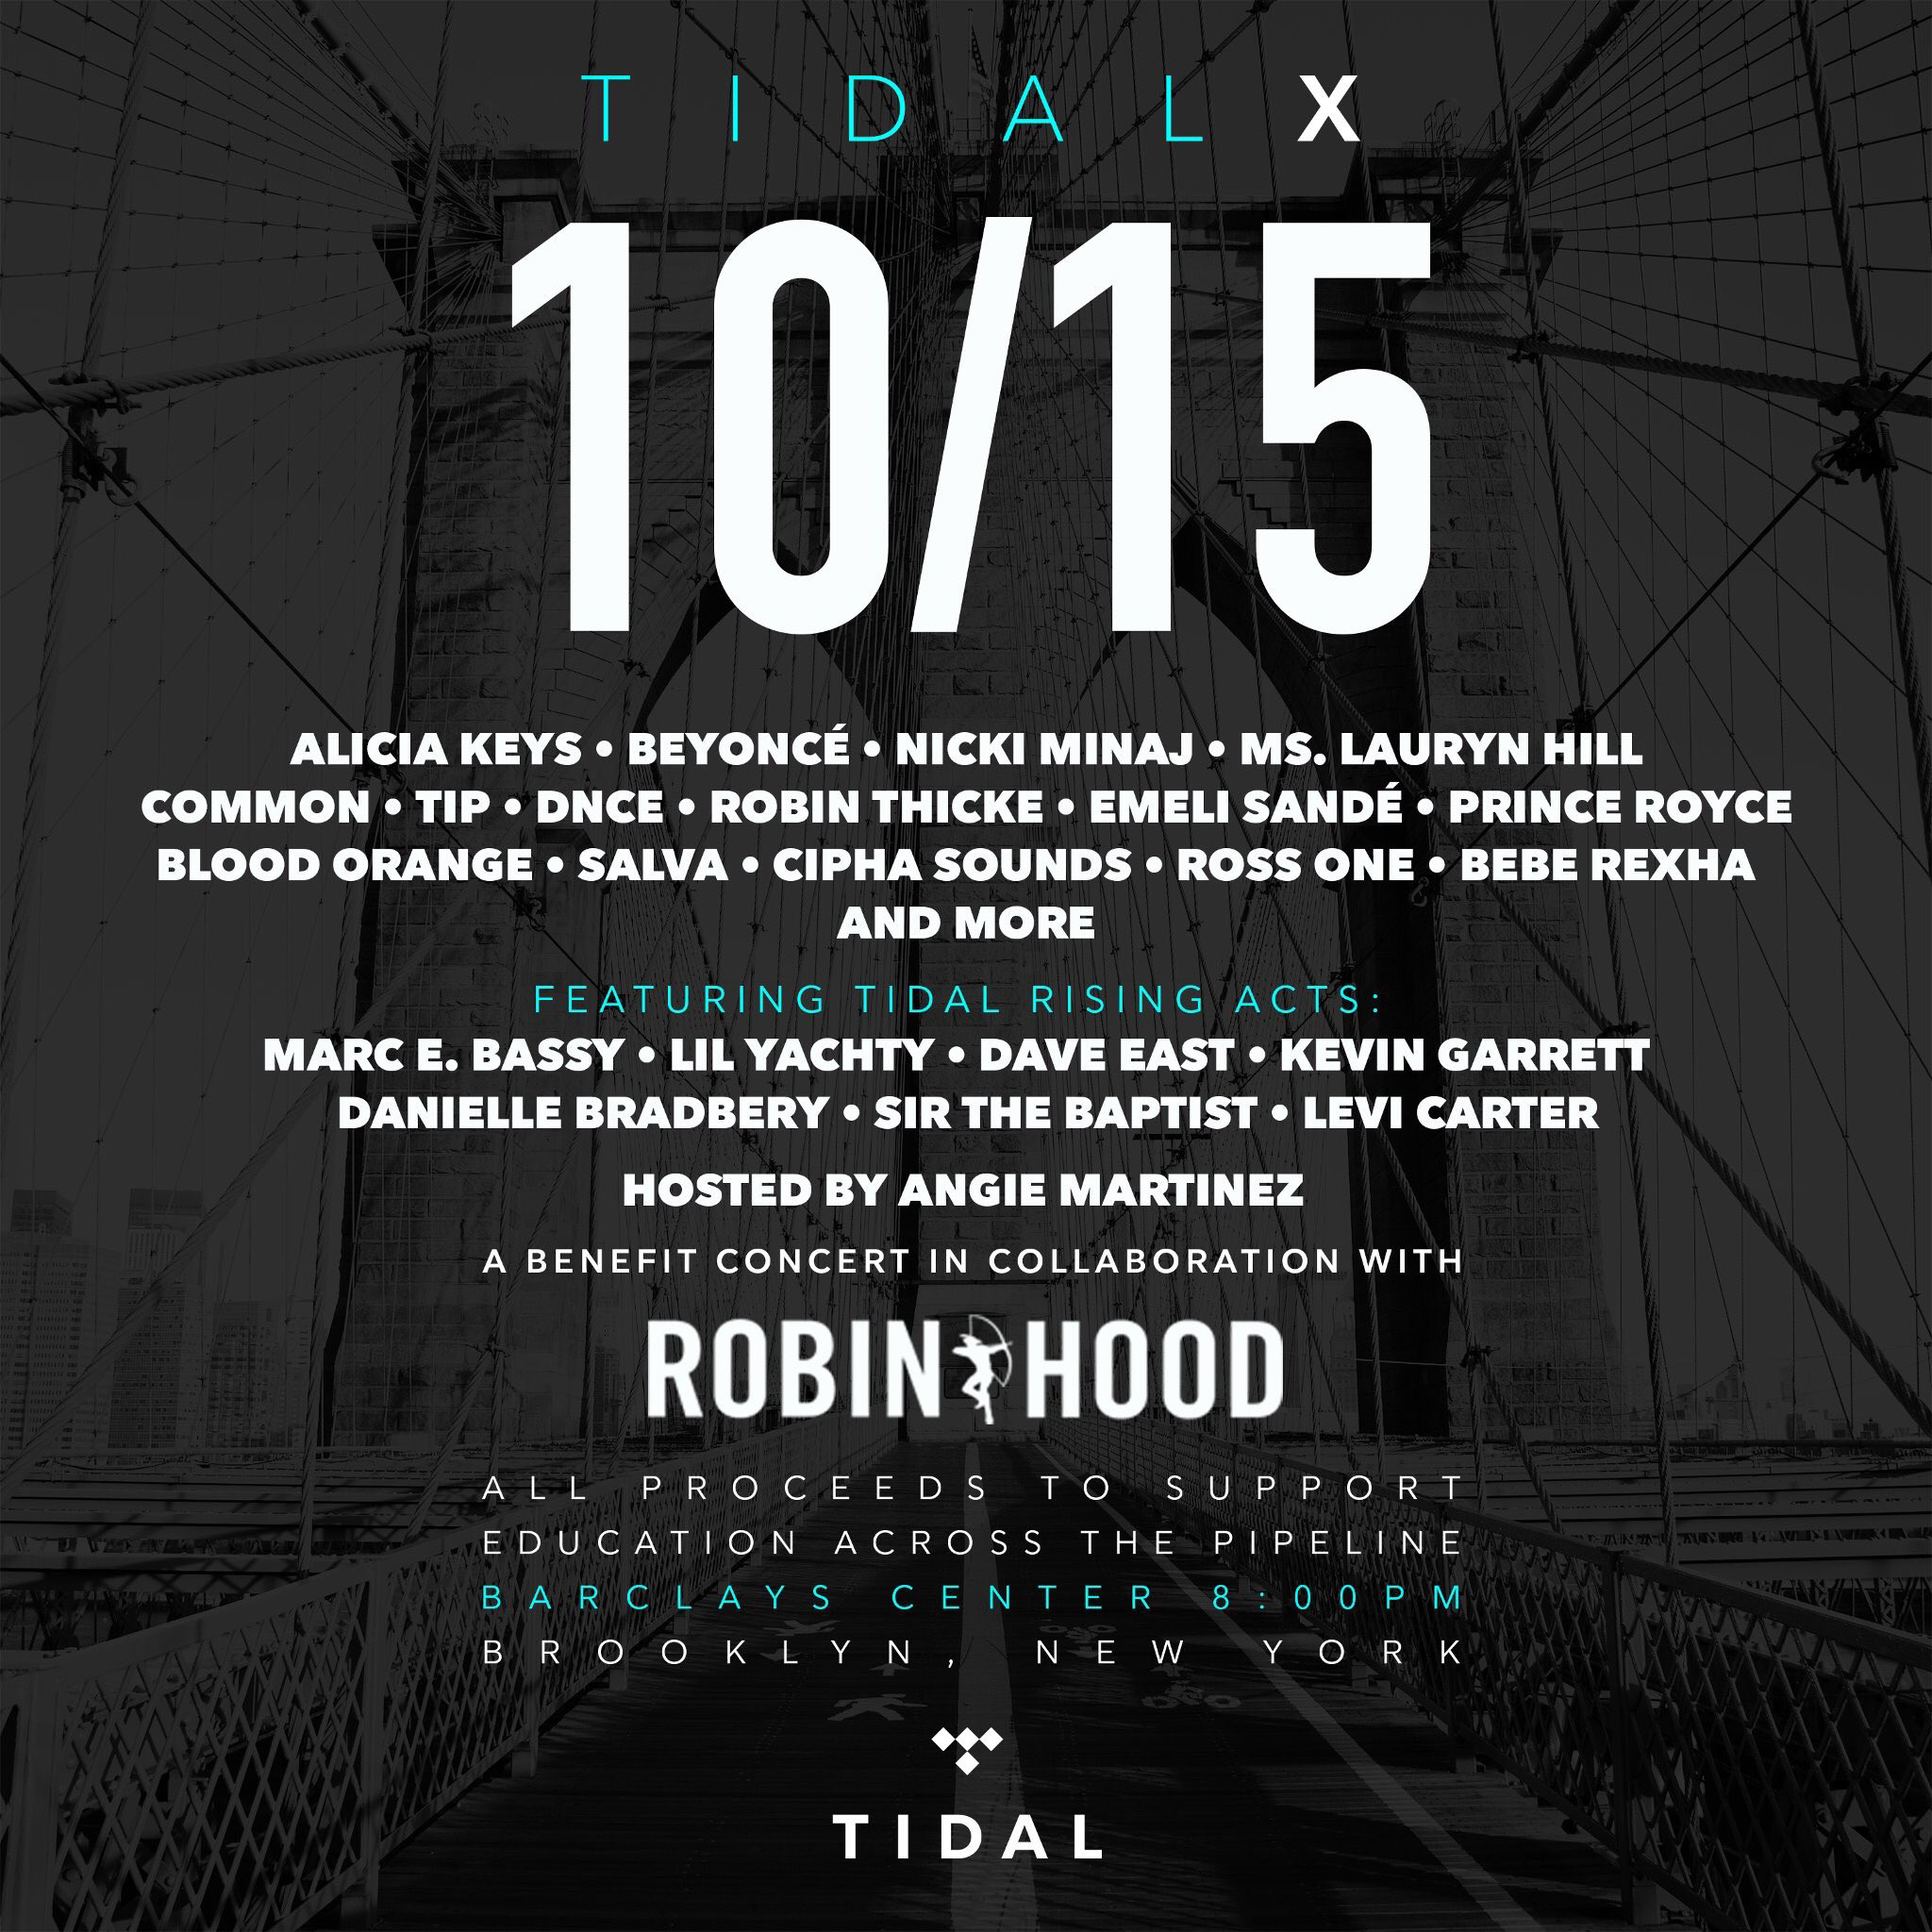 Jay Z's Tidal is Donating 1.5 Million to Black Lives Matter, Trayvon Martin Foundation news